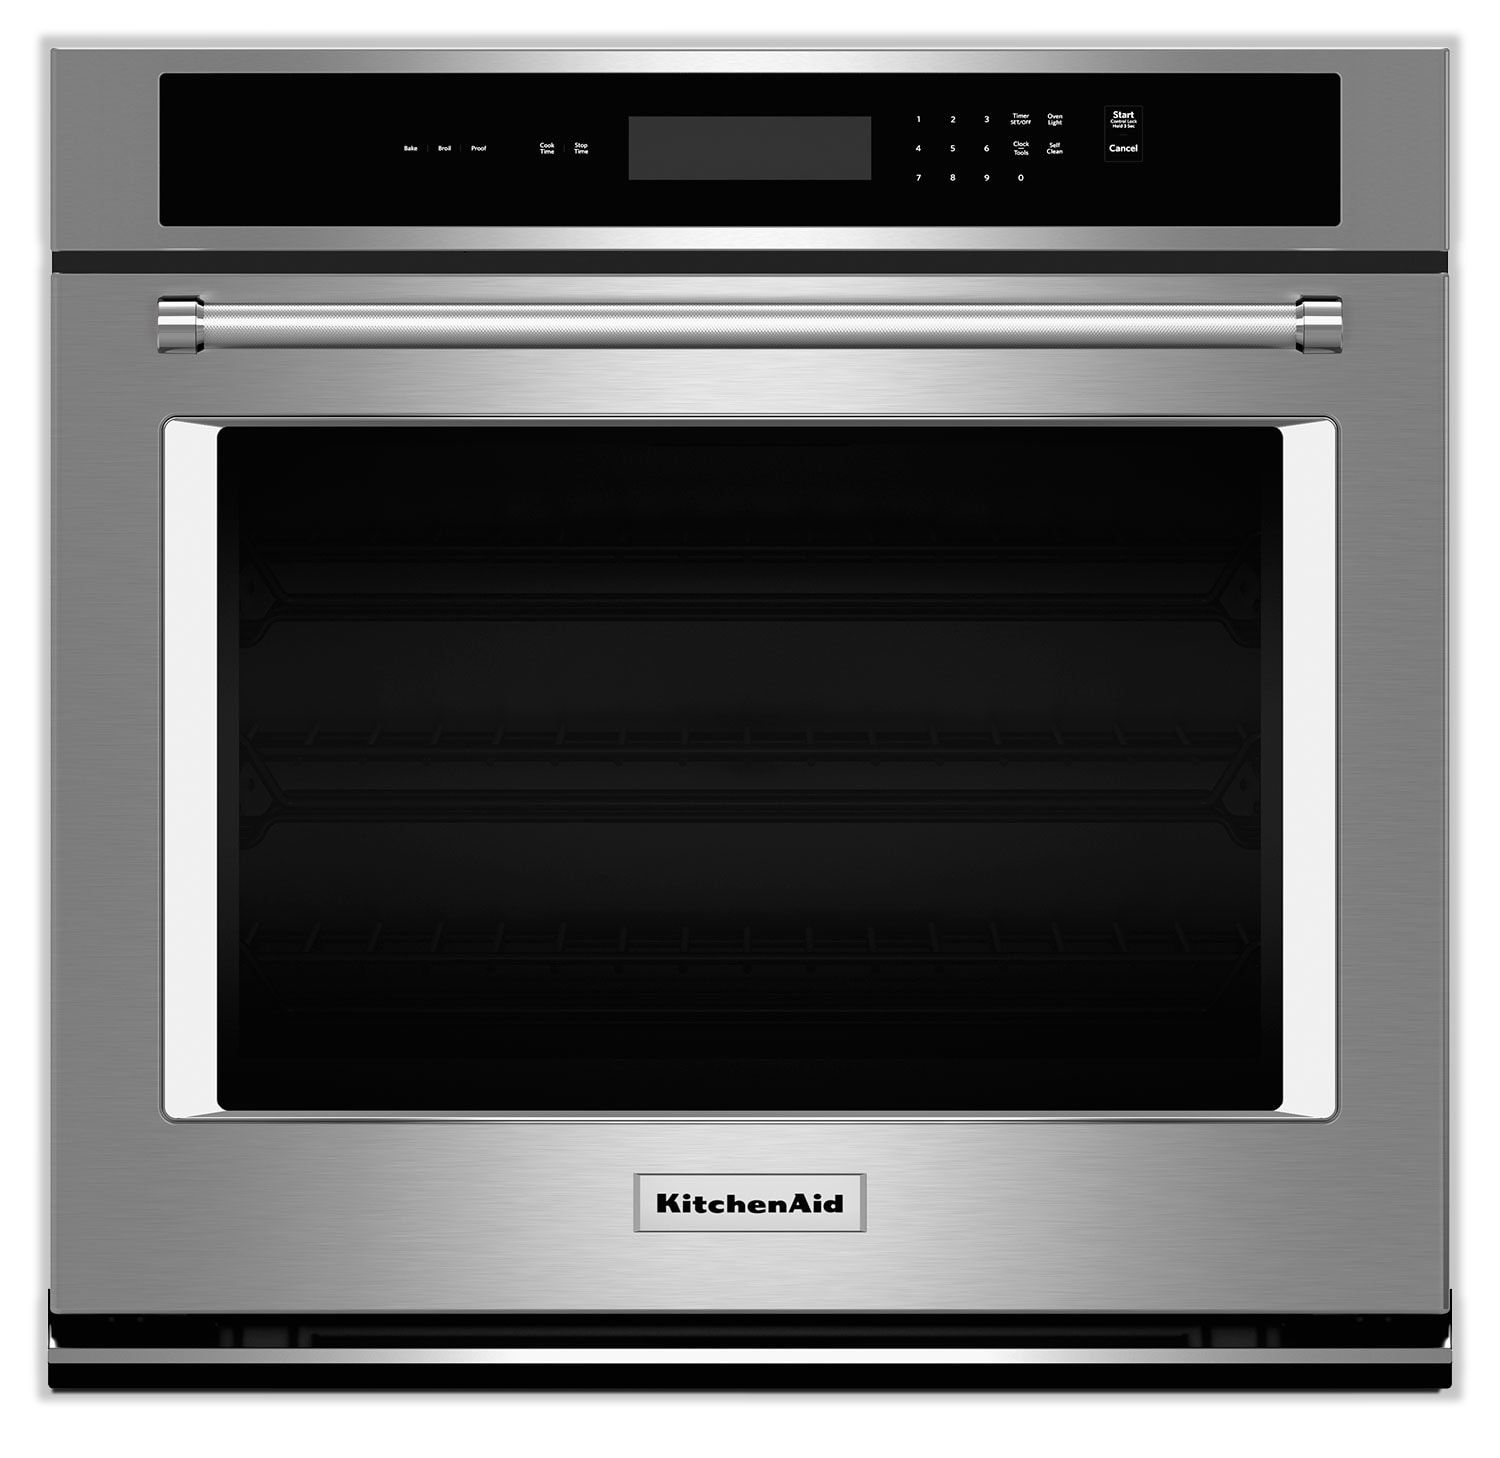 KitchenAid Stainless Steel Wall Oven (4.3 Cu. Ft.) - KOST107ESS